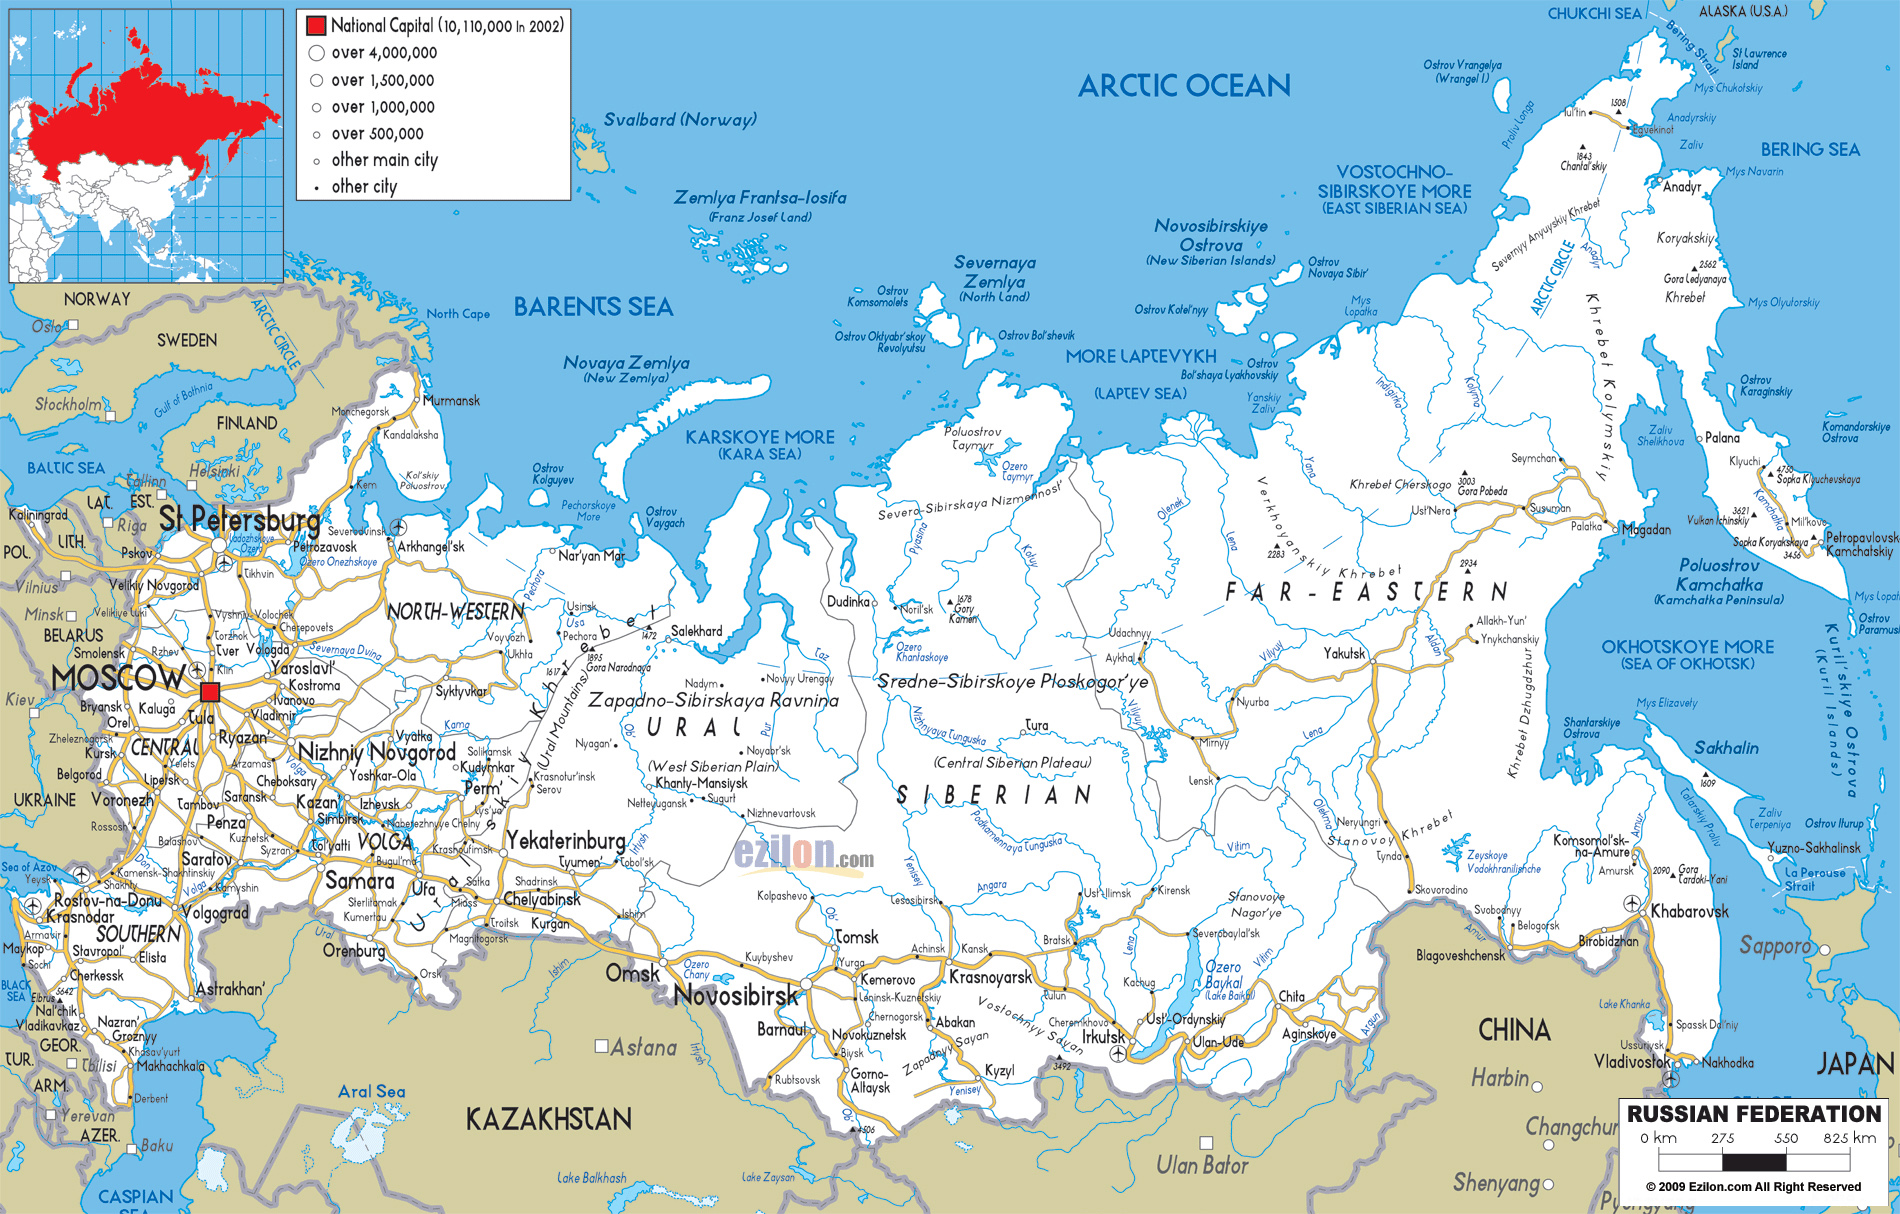 Maps Of Russia Detailed Map Of Russia With Cities And Regions - Map of russia with cities